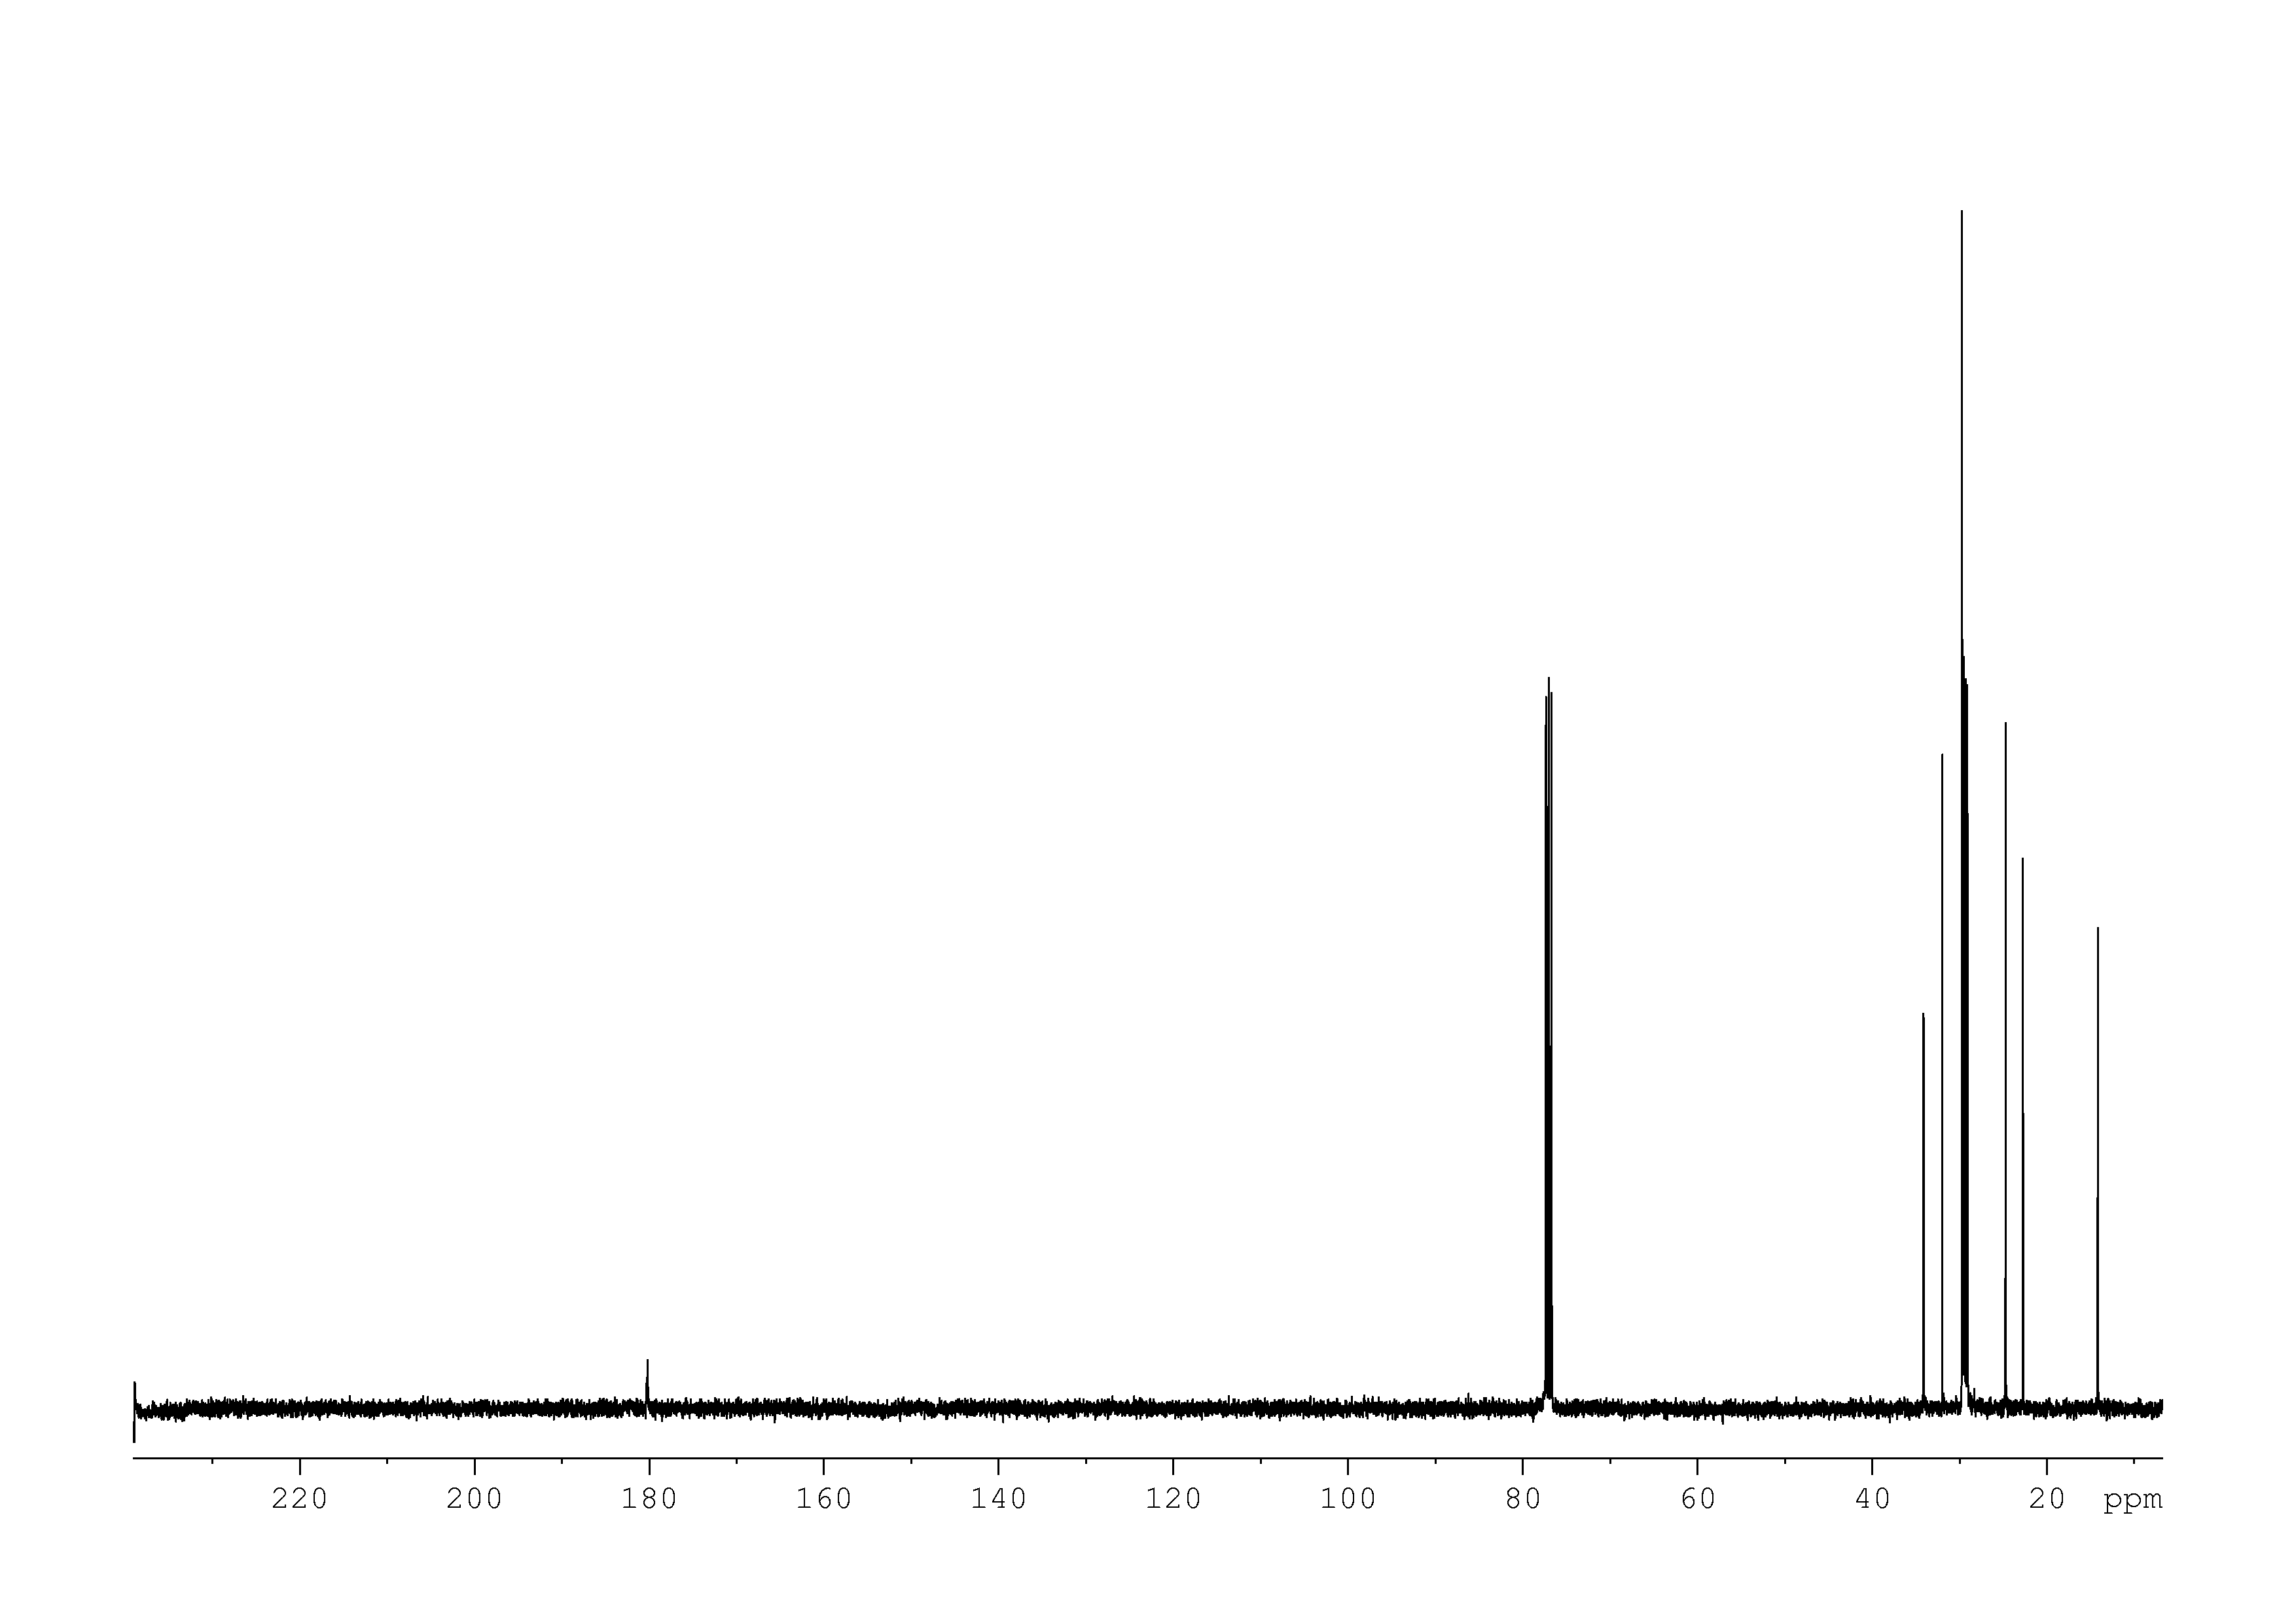 1D 13C, n/a spectrum for pentadecanoic acid